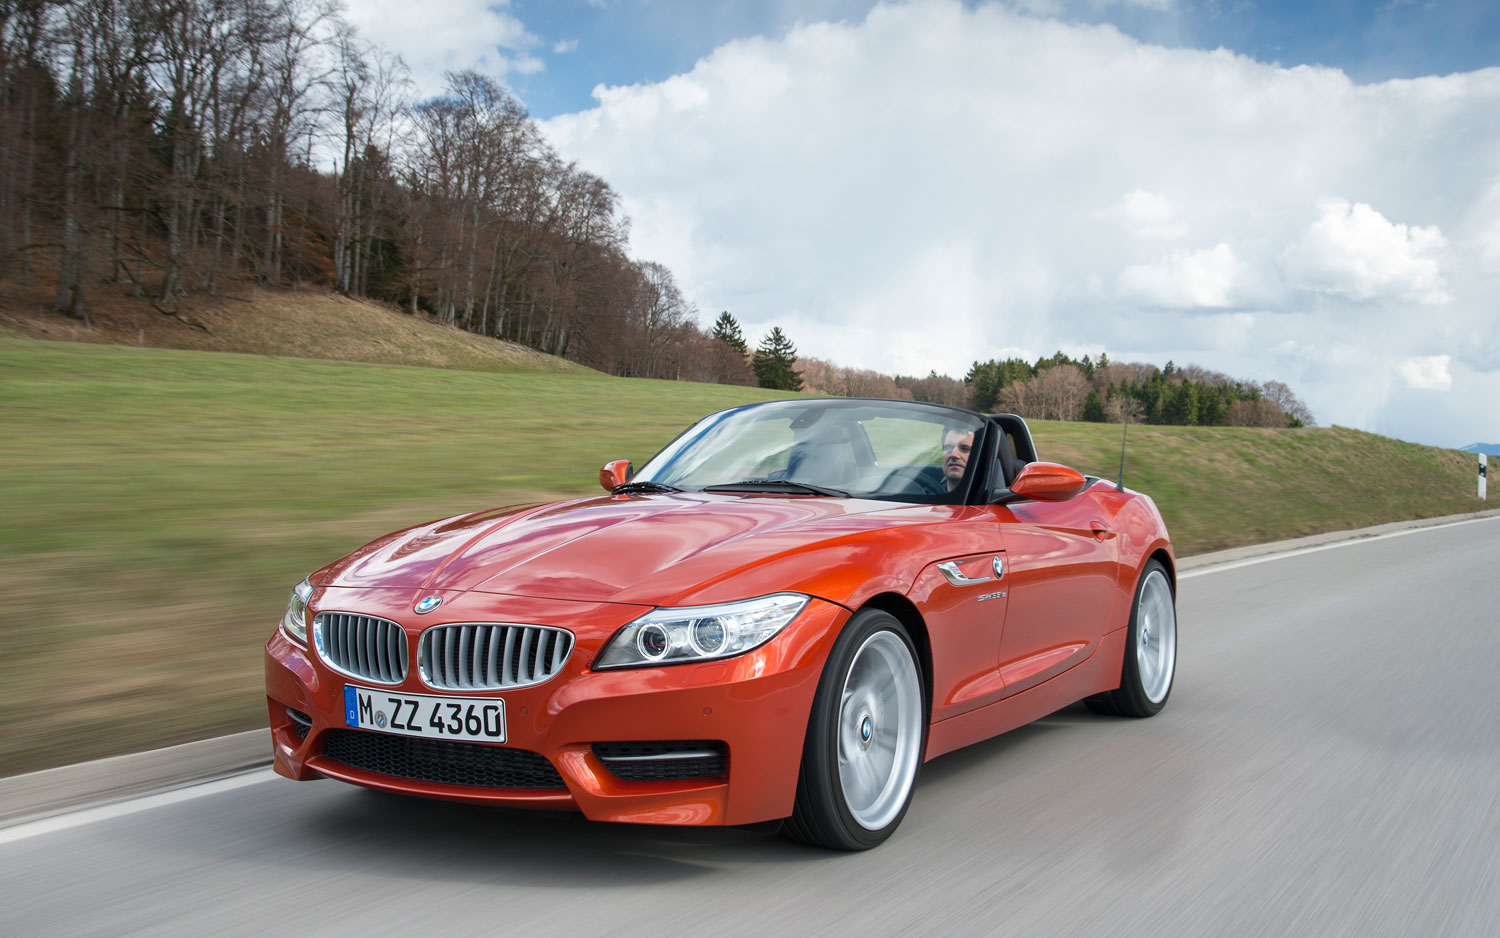 2014 BMW Z4 Front Left View 21